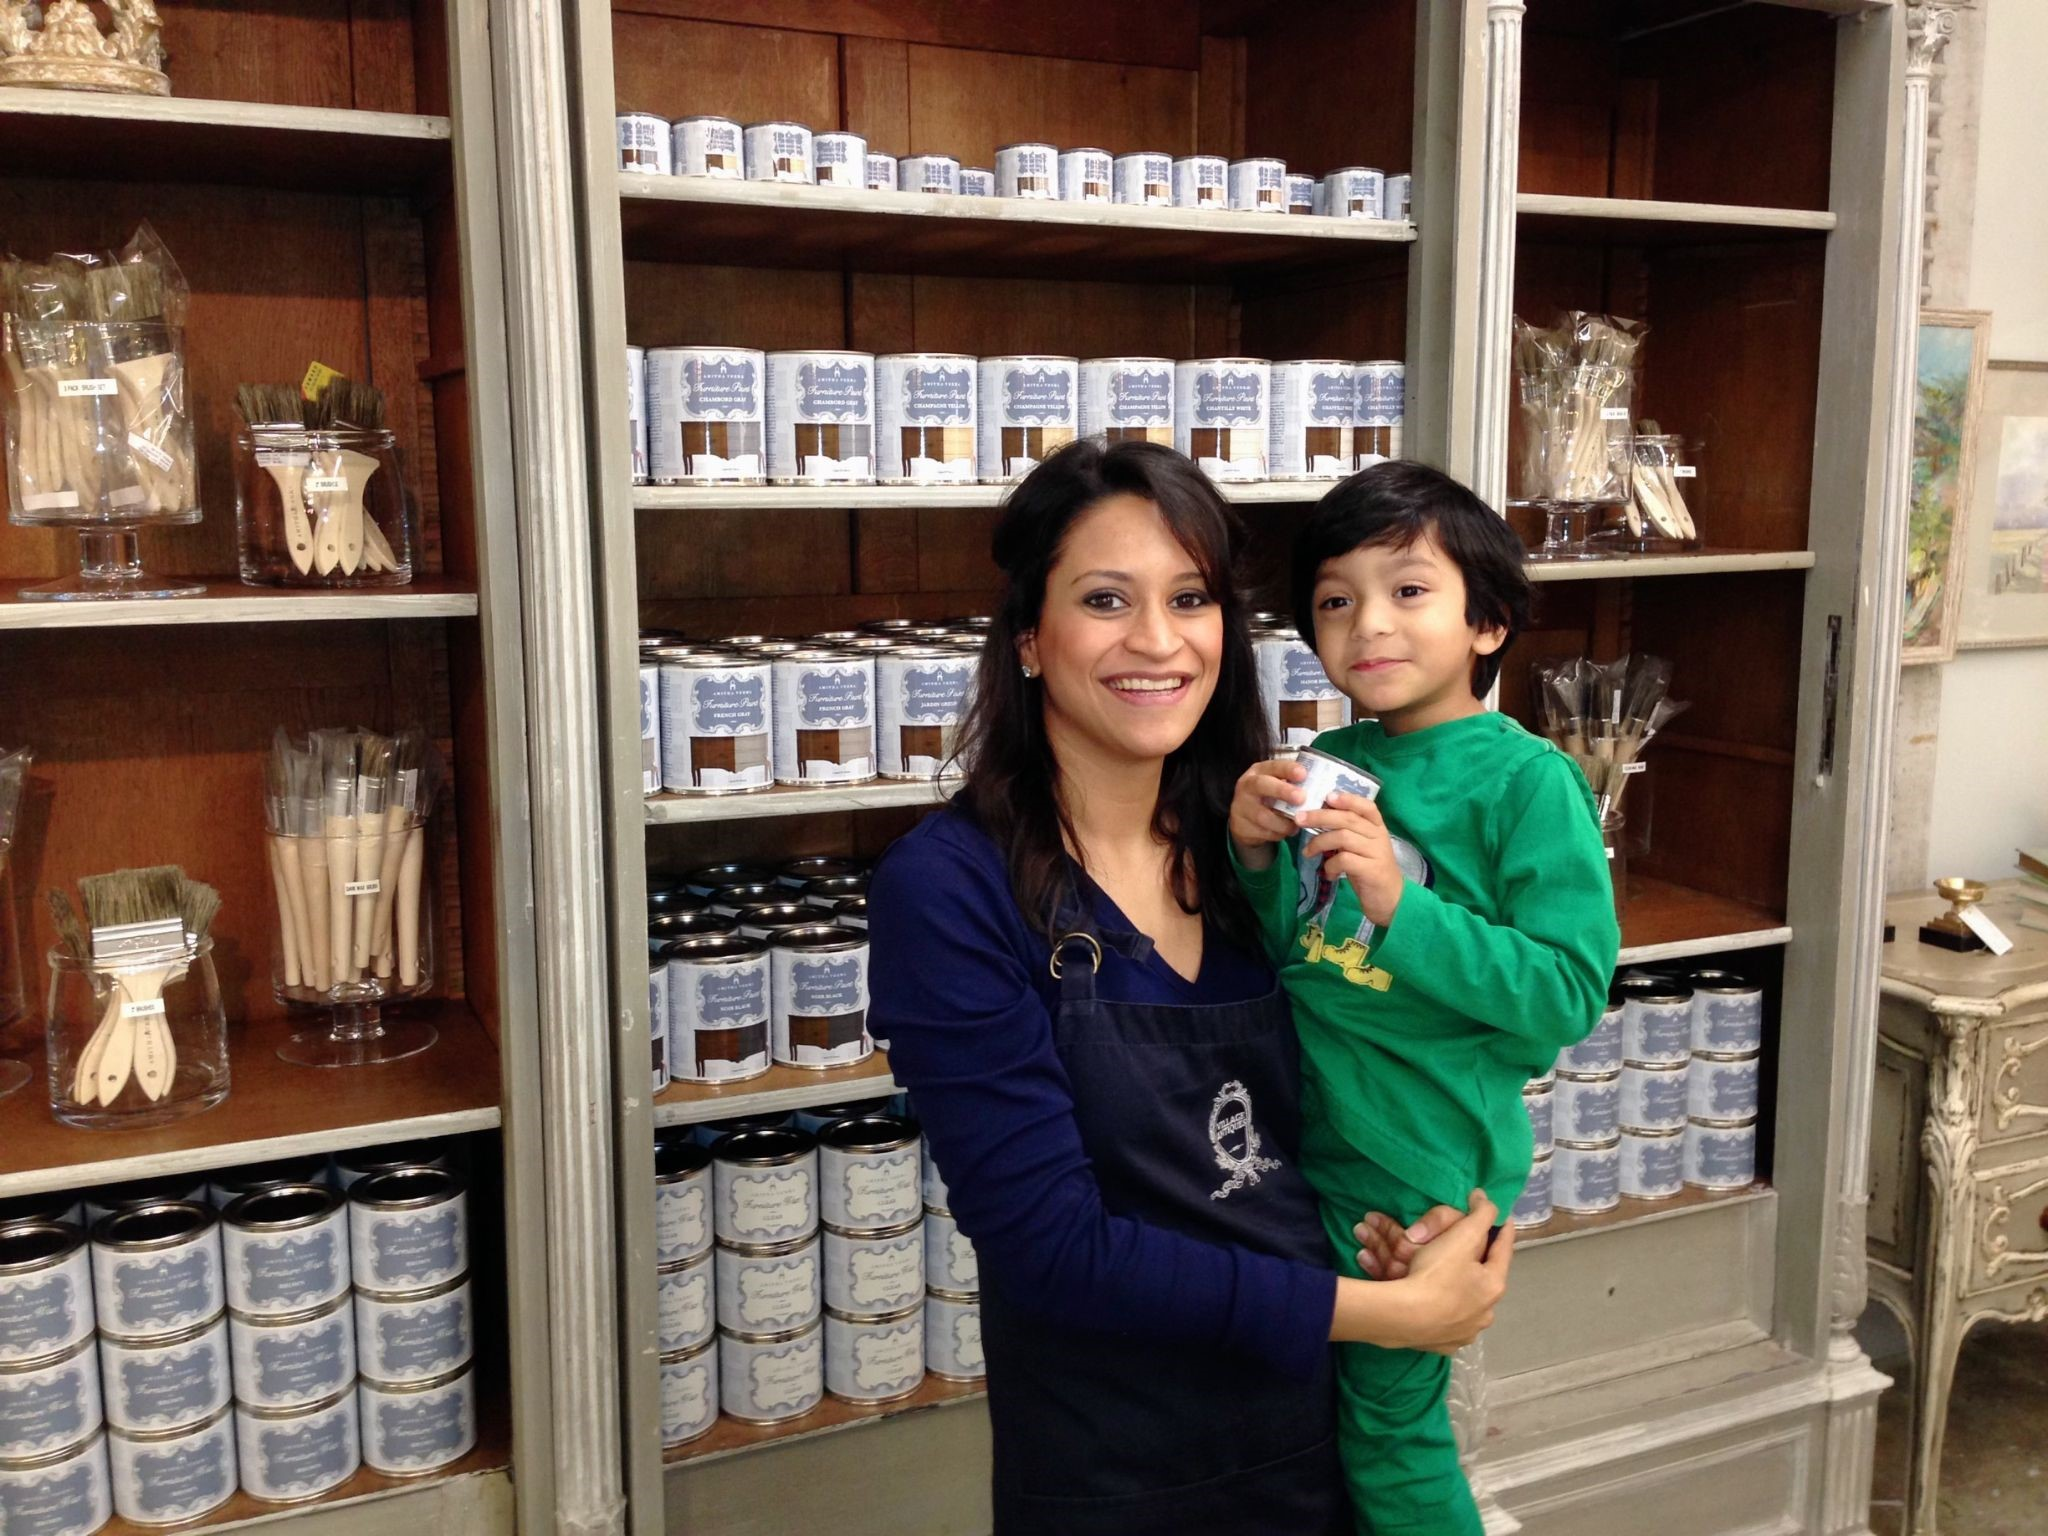 Amitha and son Rohan, in front of the new Amitha Chalk Paint shelves after launch at an antique store in Houston, Village Antiques